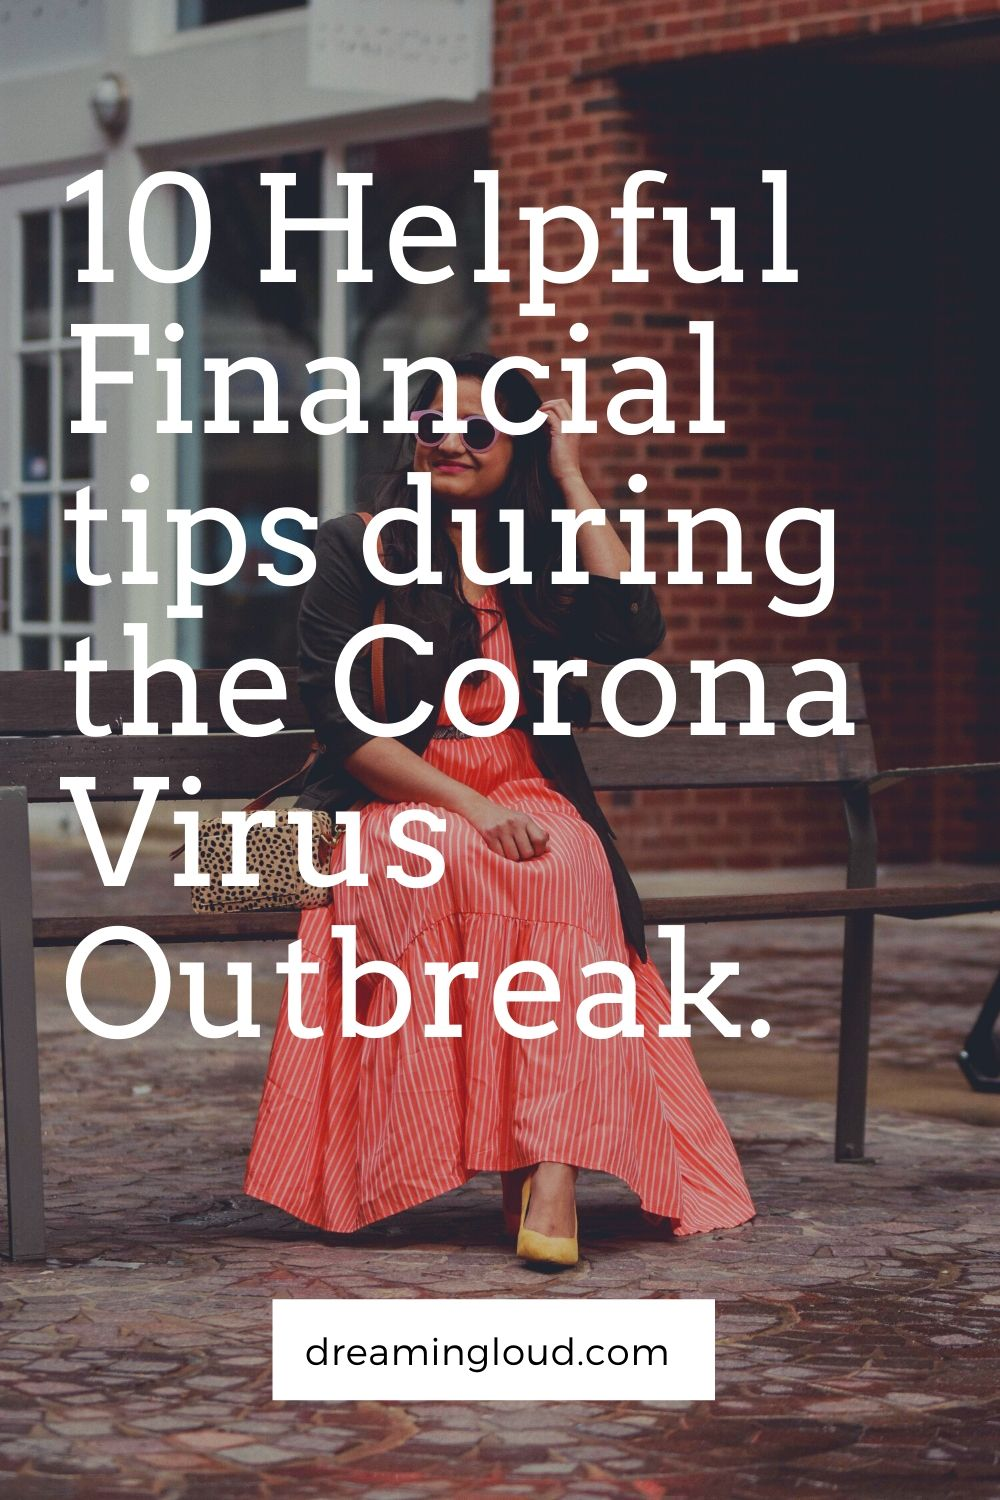 10 Helpful Financial tips during the Corona Virus Outbreak. | Personal Finance tips by popular US lifestyle blog, Dreaming Loud: Pinterest image of helpful financial tips during the coronavirus outbreak.